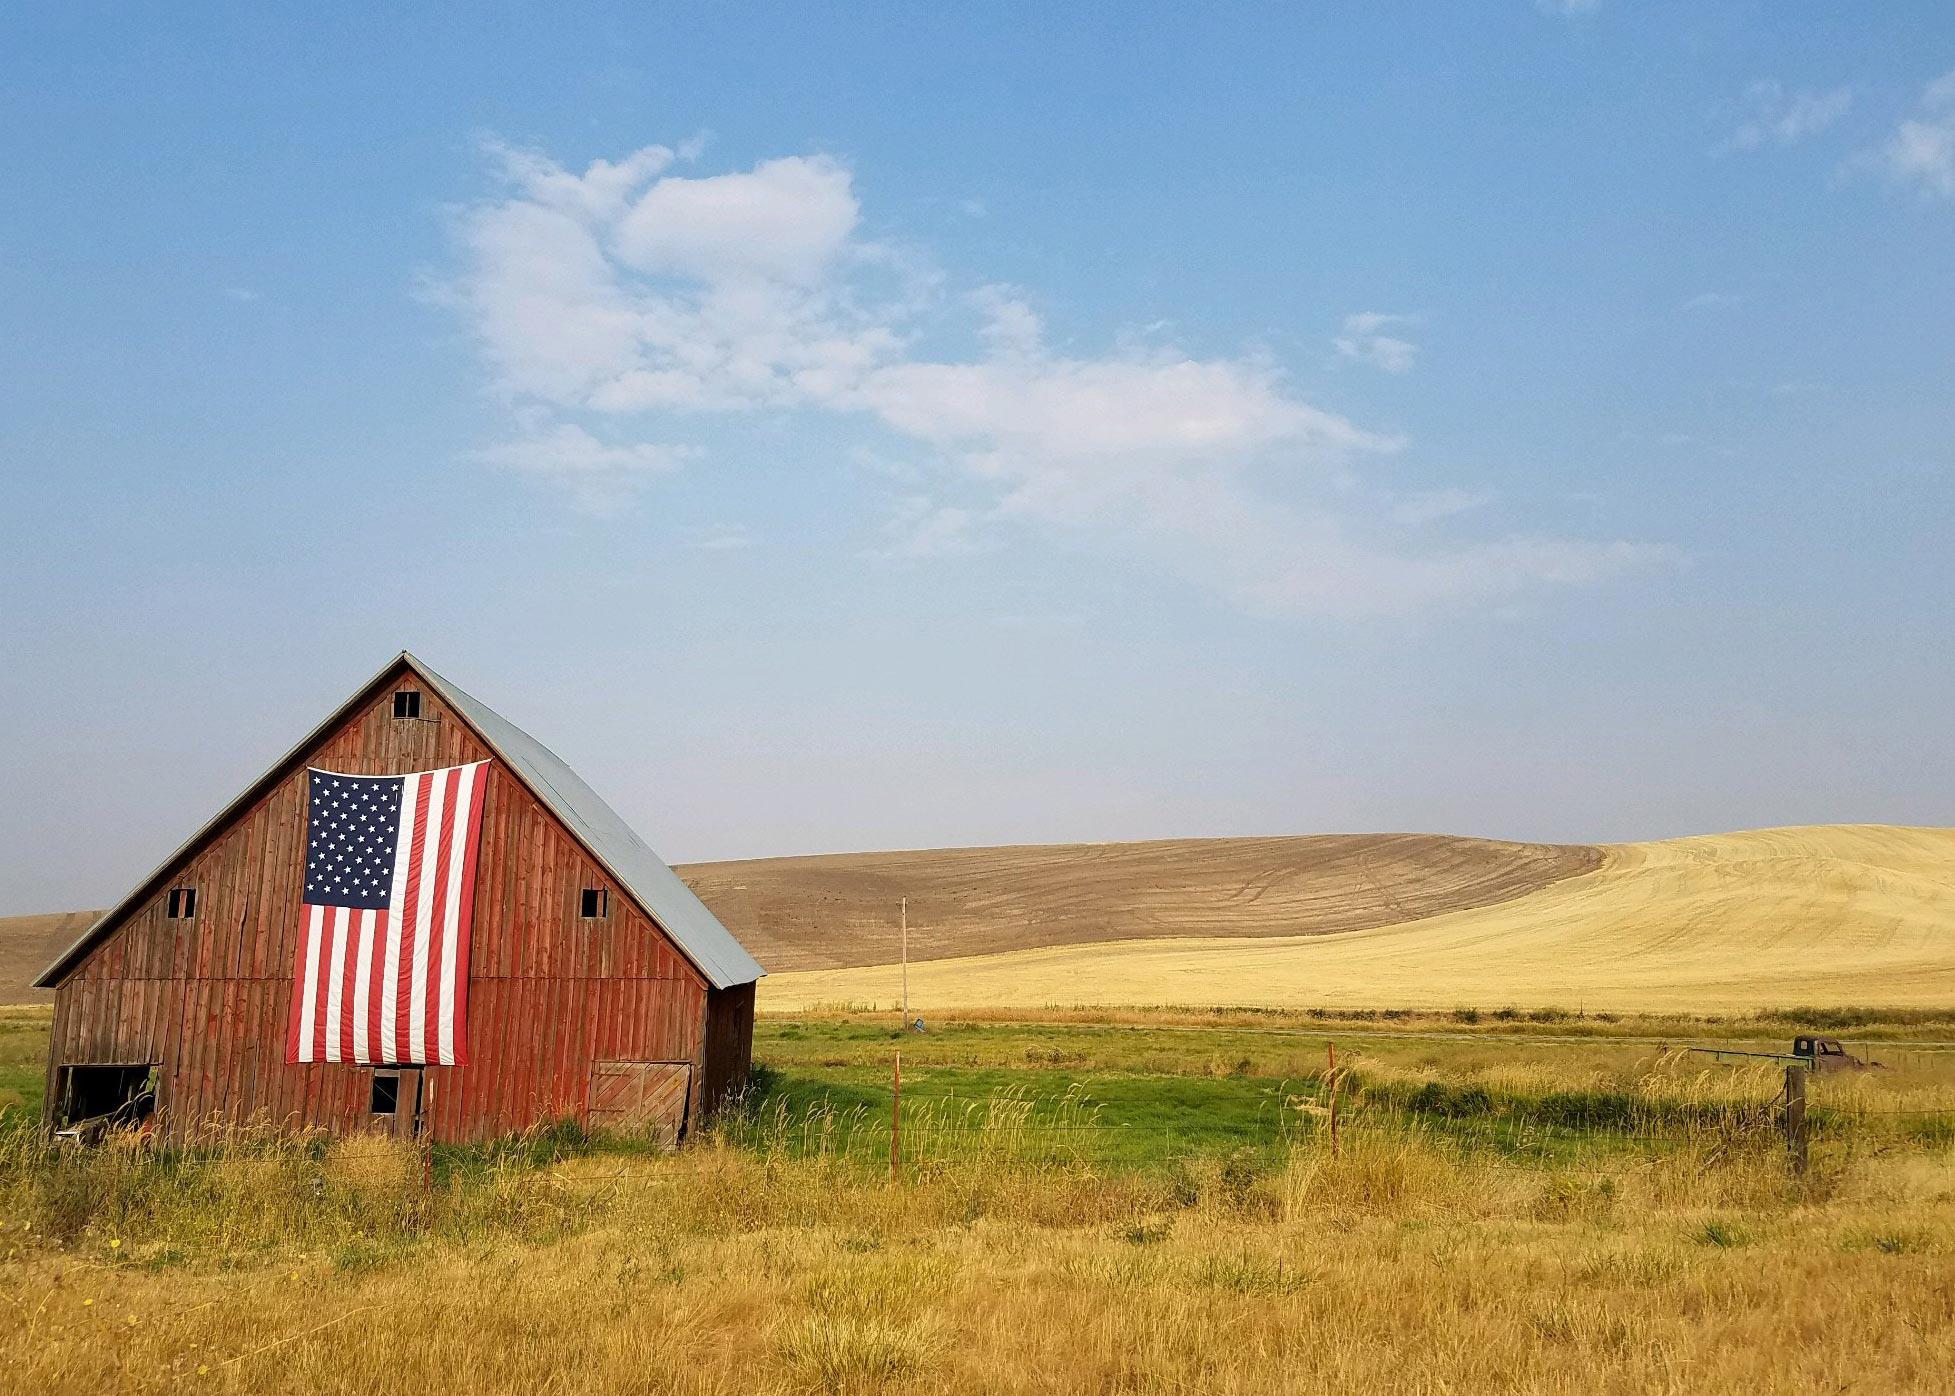 Old red barn with American flag hanging on the front in the countryside